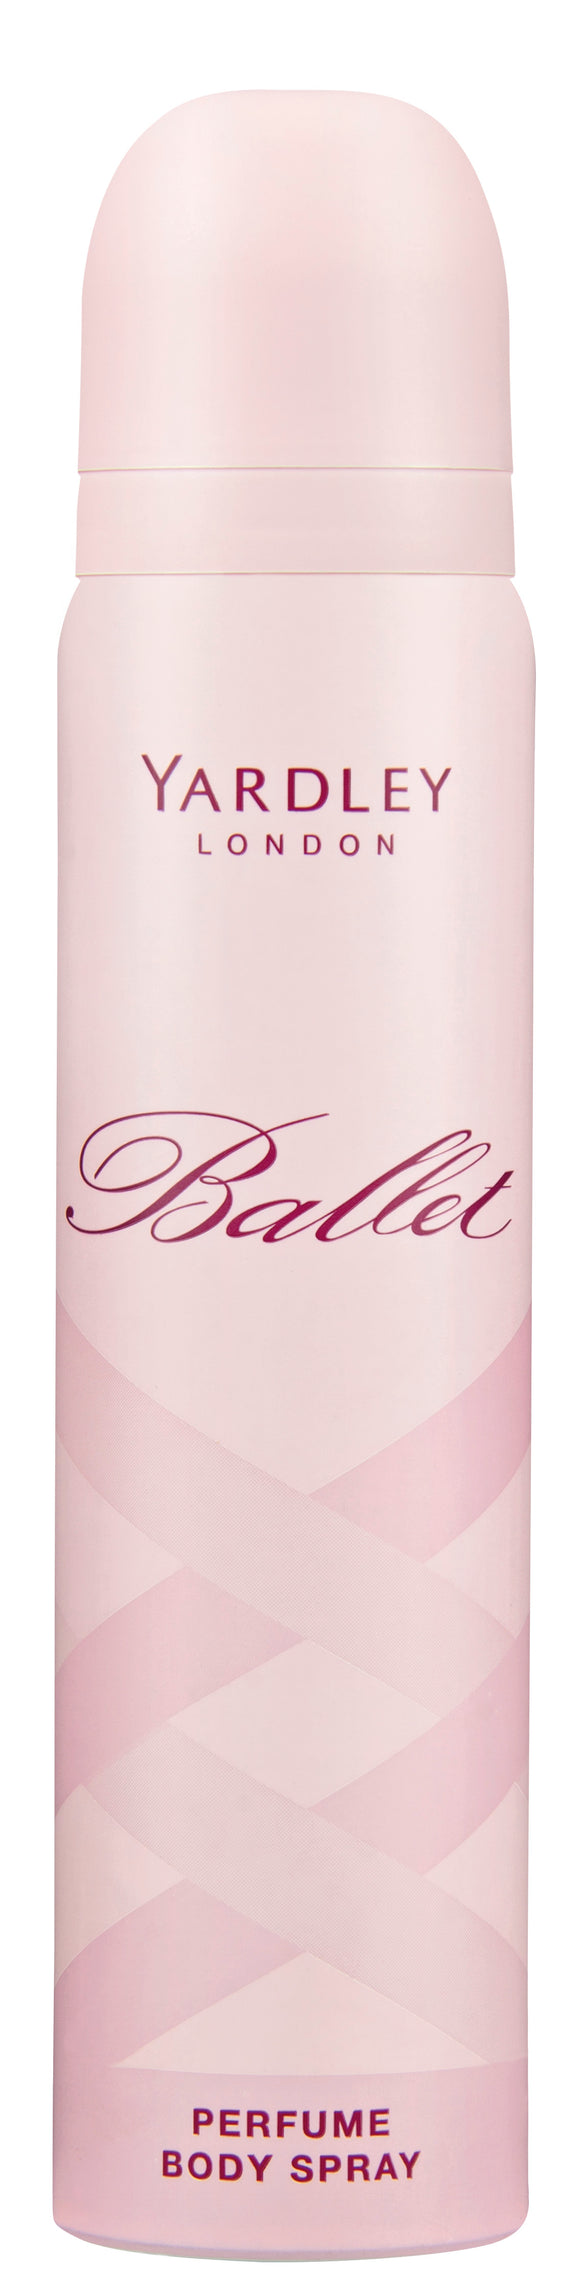 Yardley Ballet Perfume Body Spray 90ML